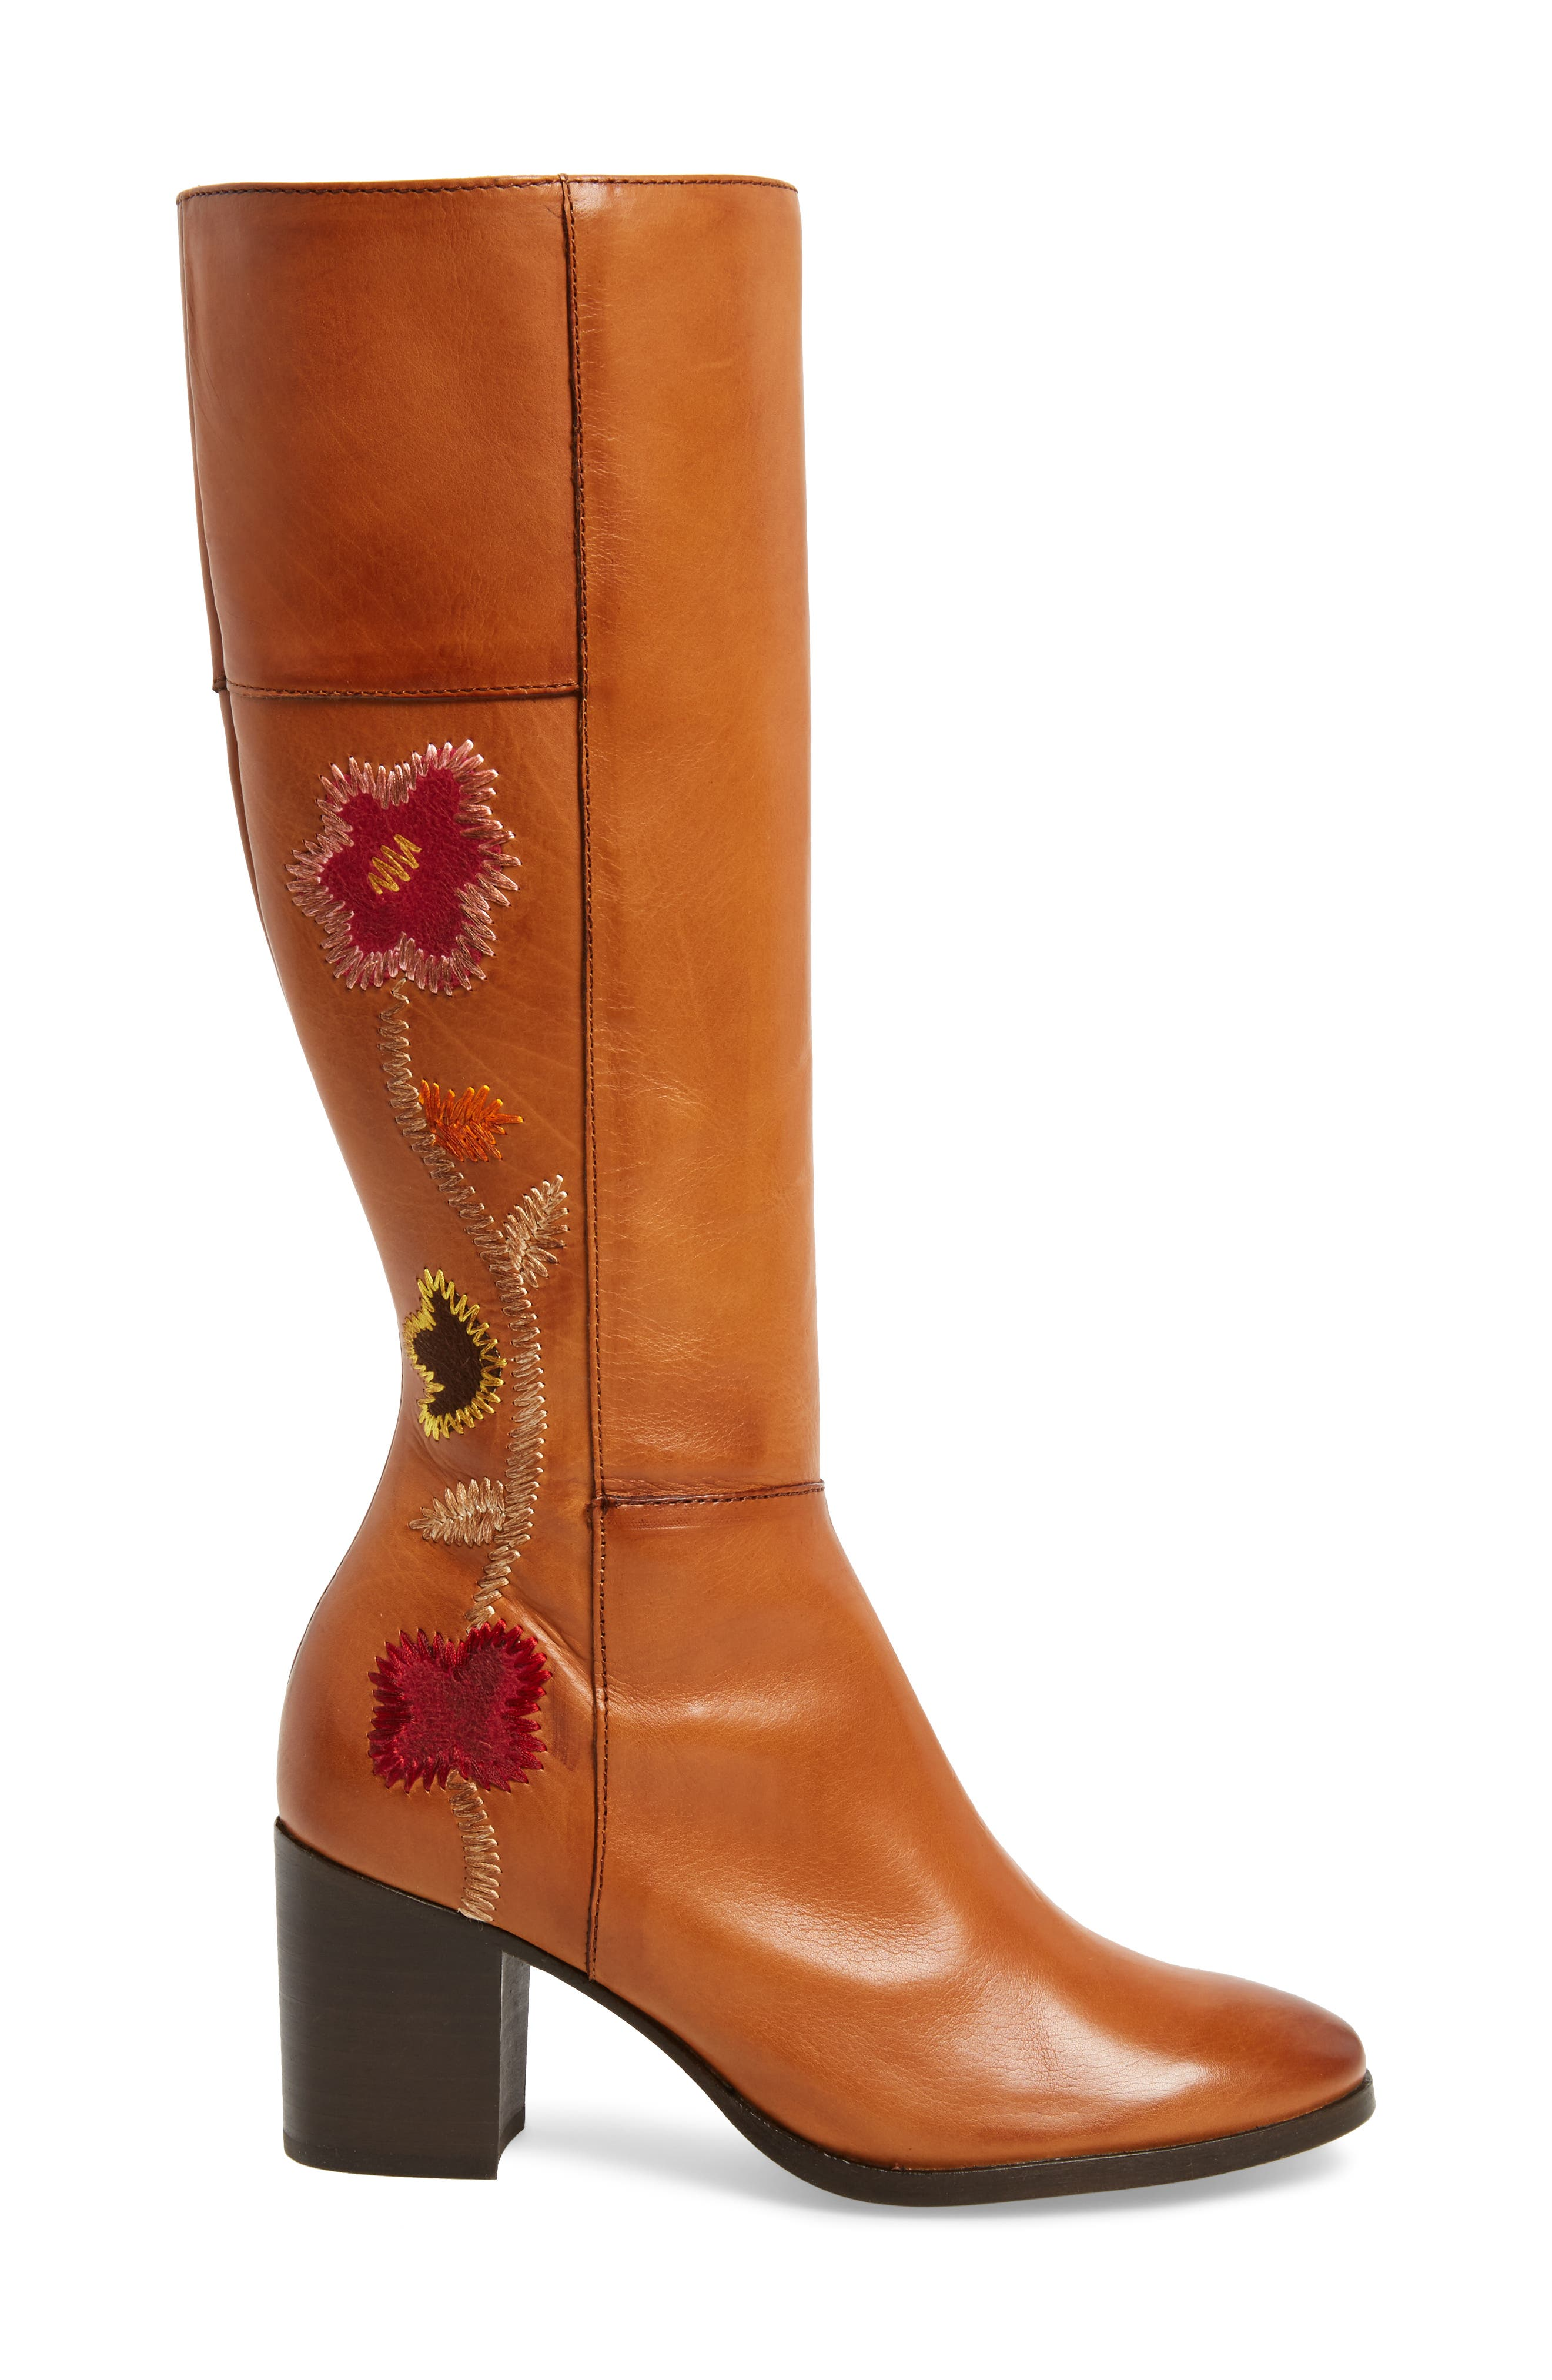 Nova Floral Embroidered Knee High Boot,                             Alternate thumbnail 3, color,                             Cognac Fabric